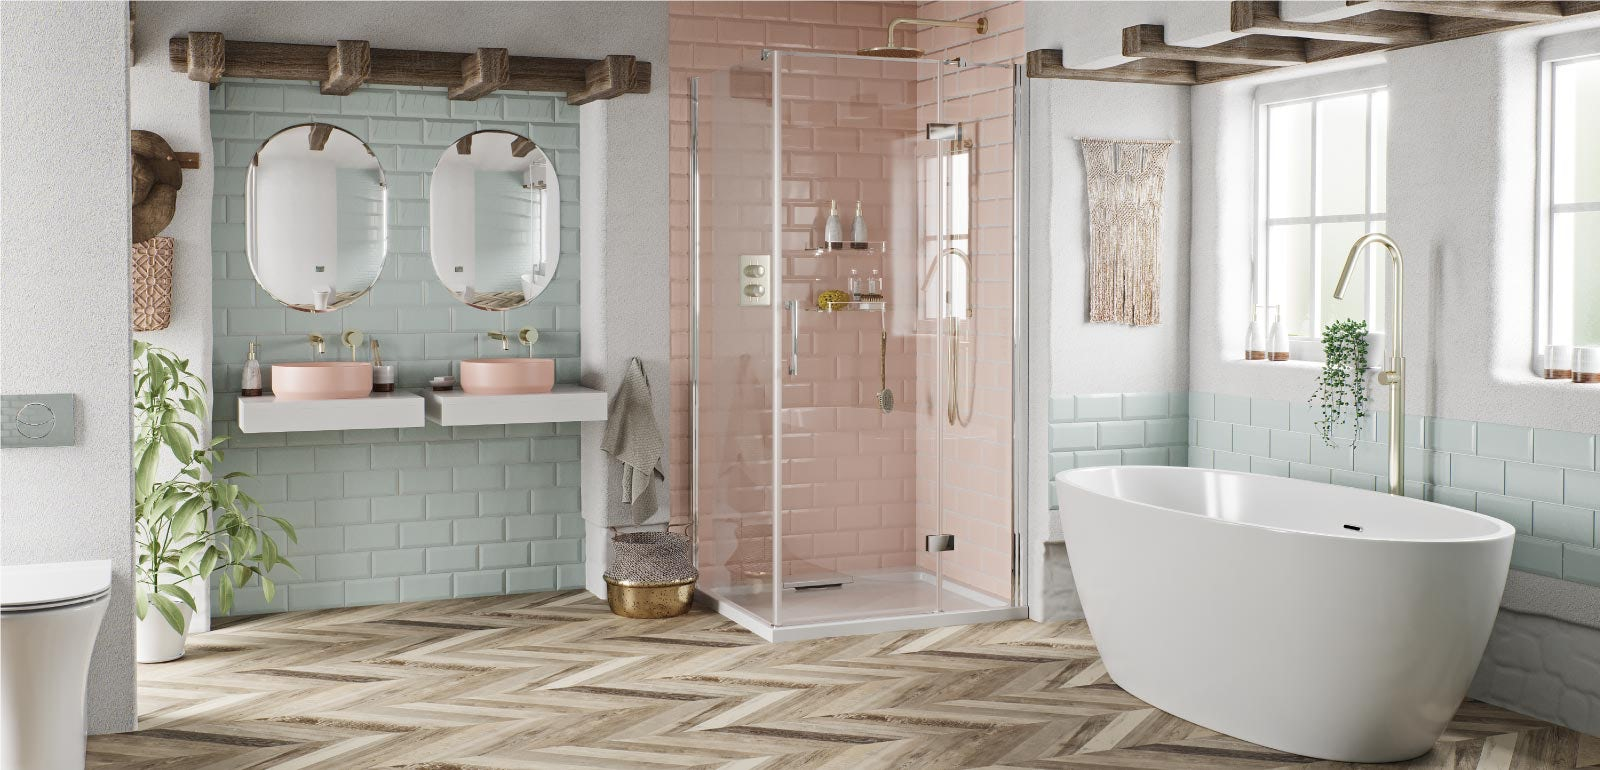 Bathroom Ideas: A Touch of Blush